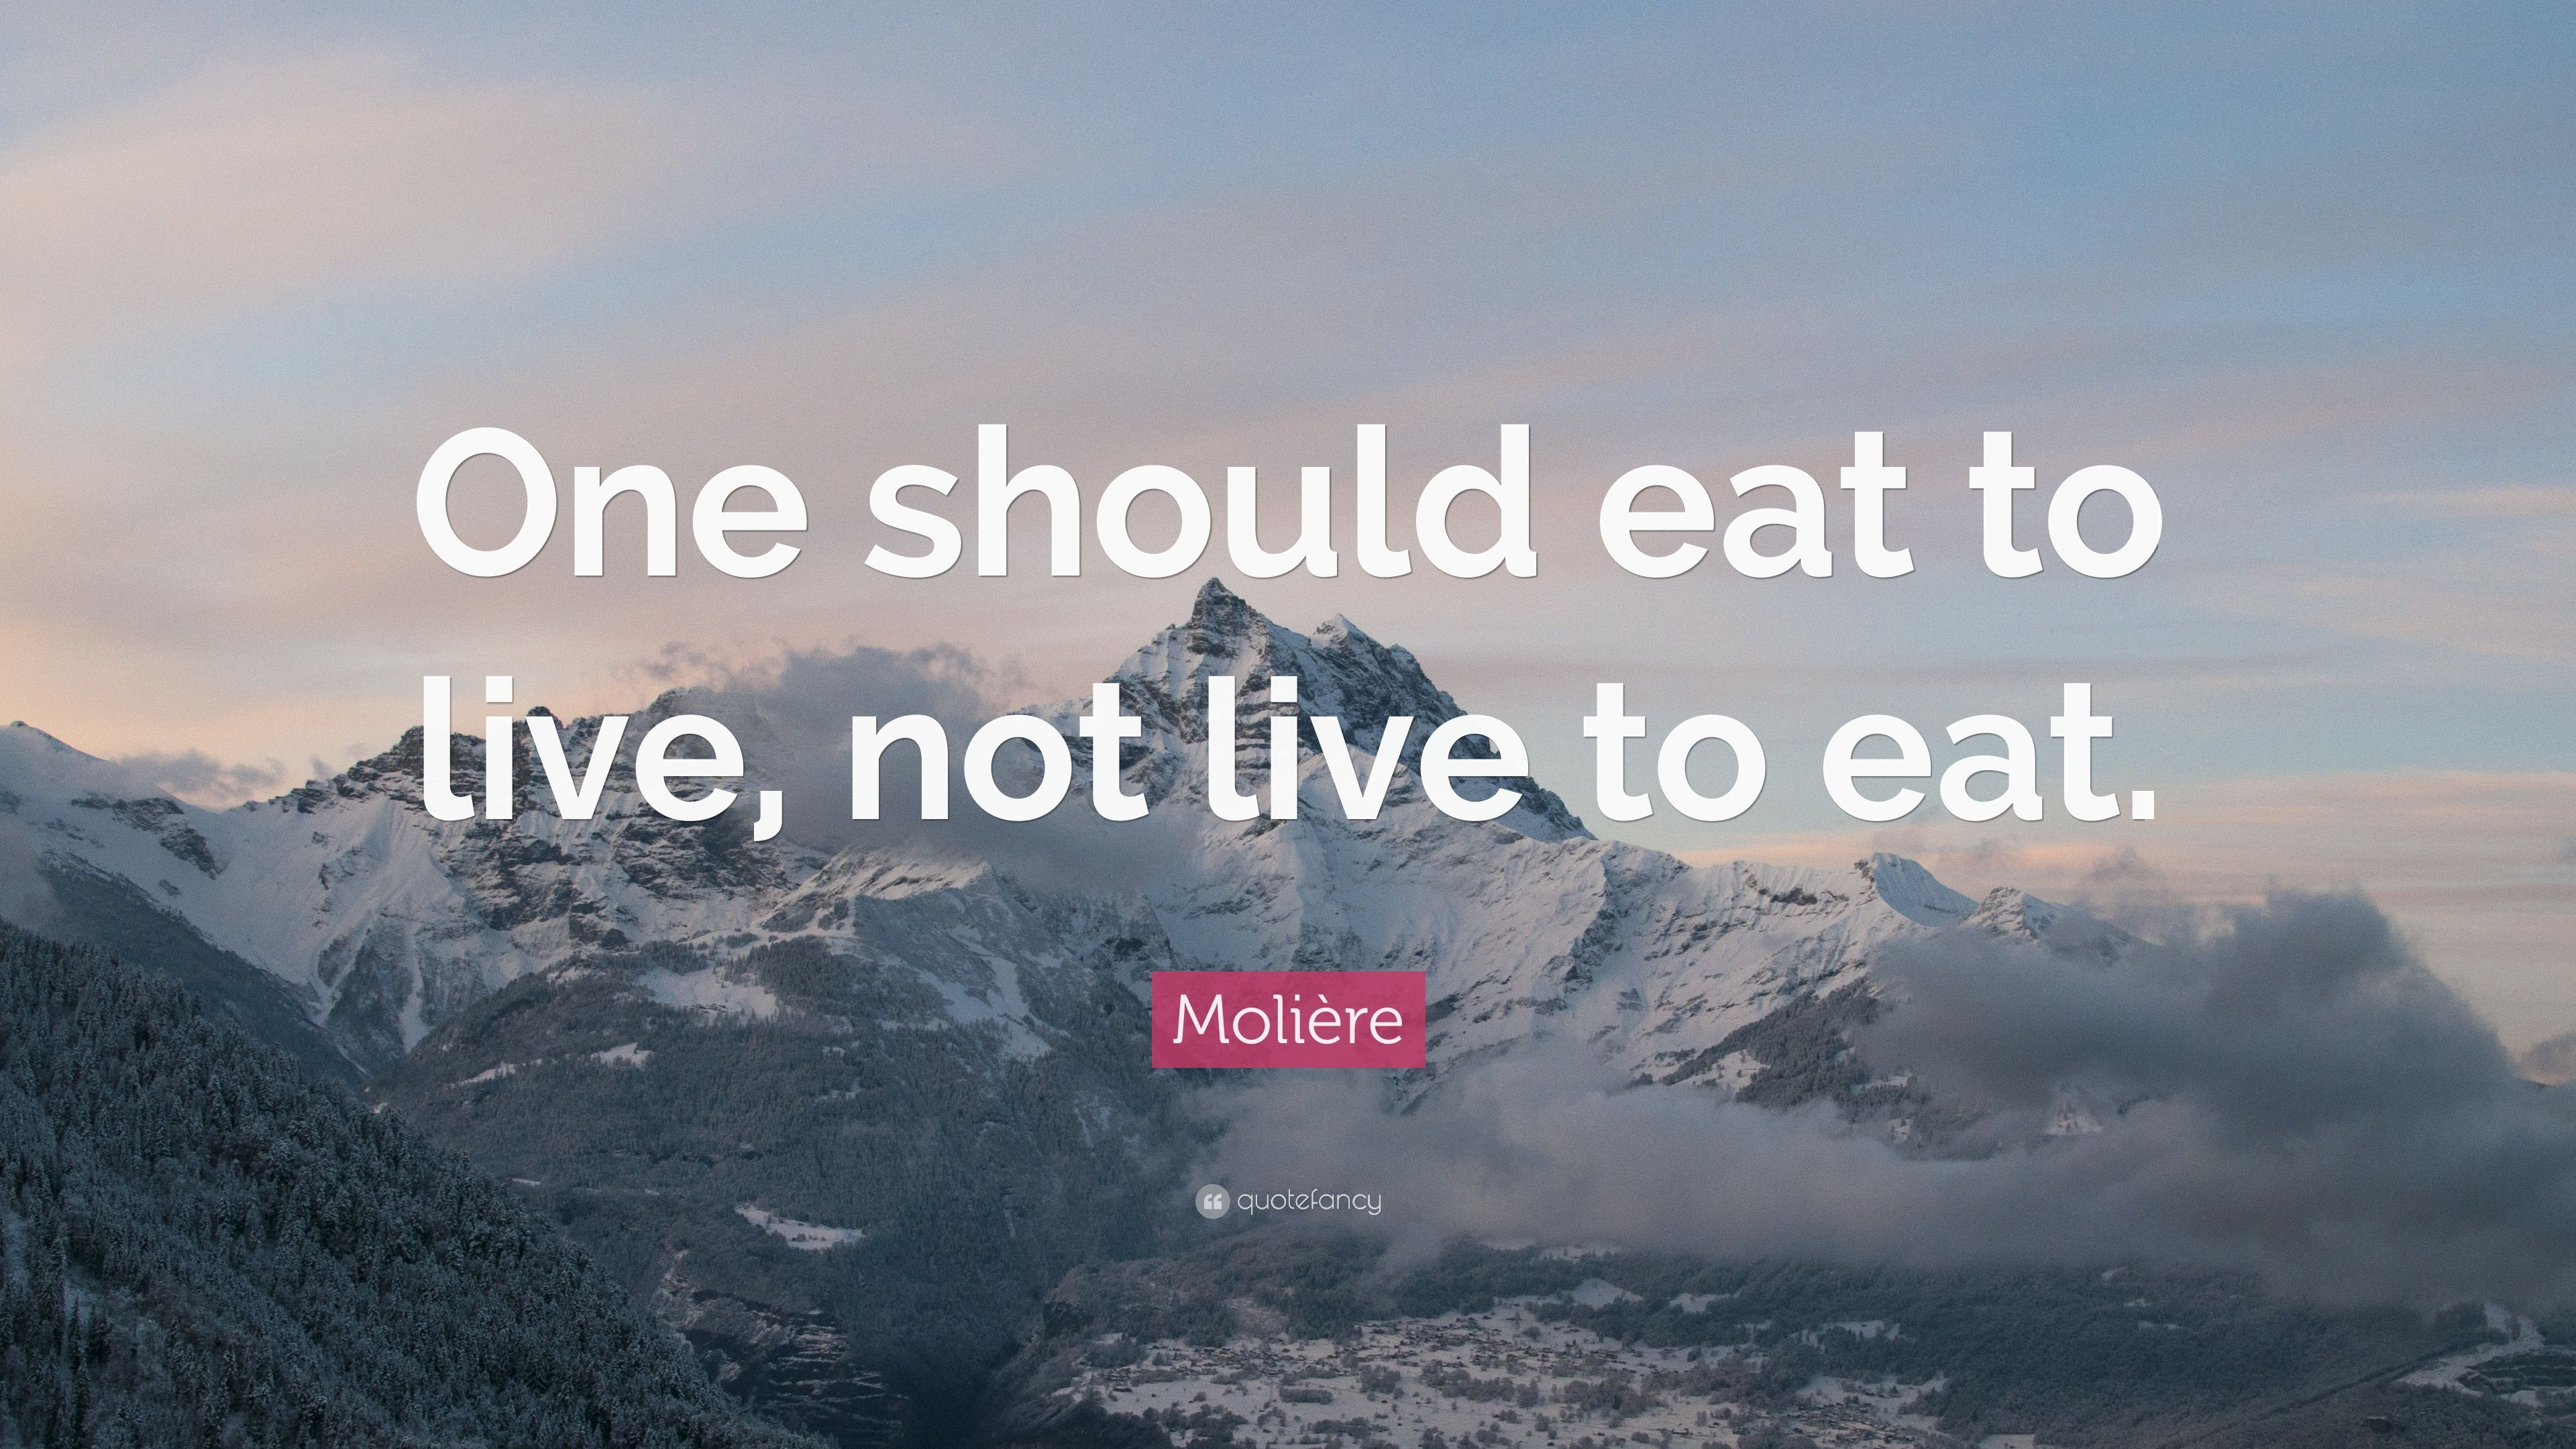 eat to live not live to eat Yet, we do not live to eat we live to do a myriad things, with eating as, actually, being fairly low on the list having children, inventing, worshipping gods, and even sociopathic acts are all on people's list for their reasons to live.